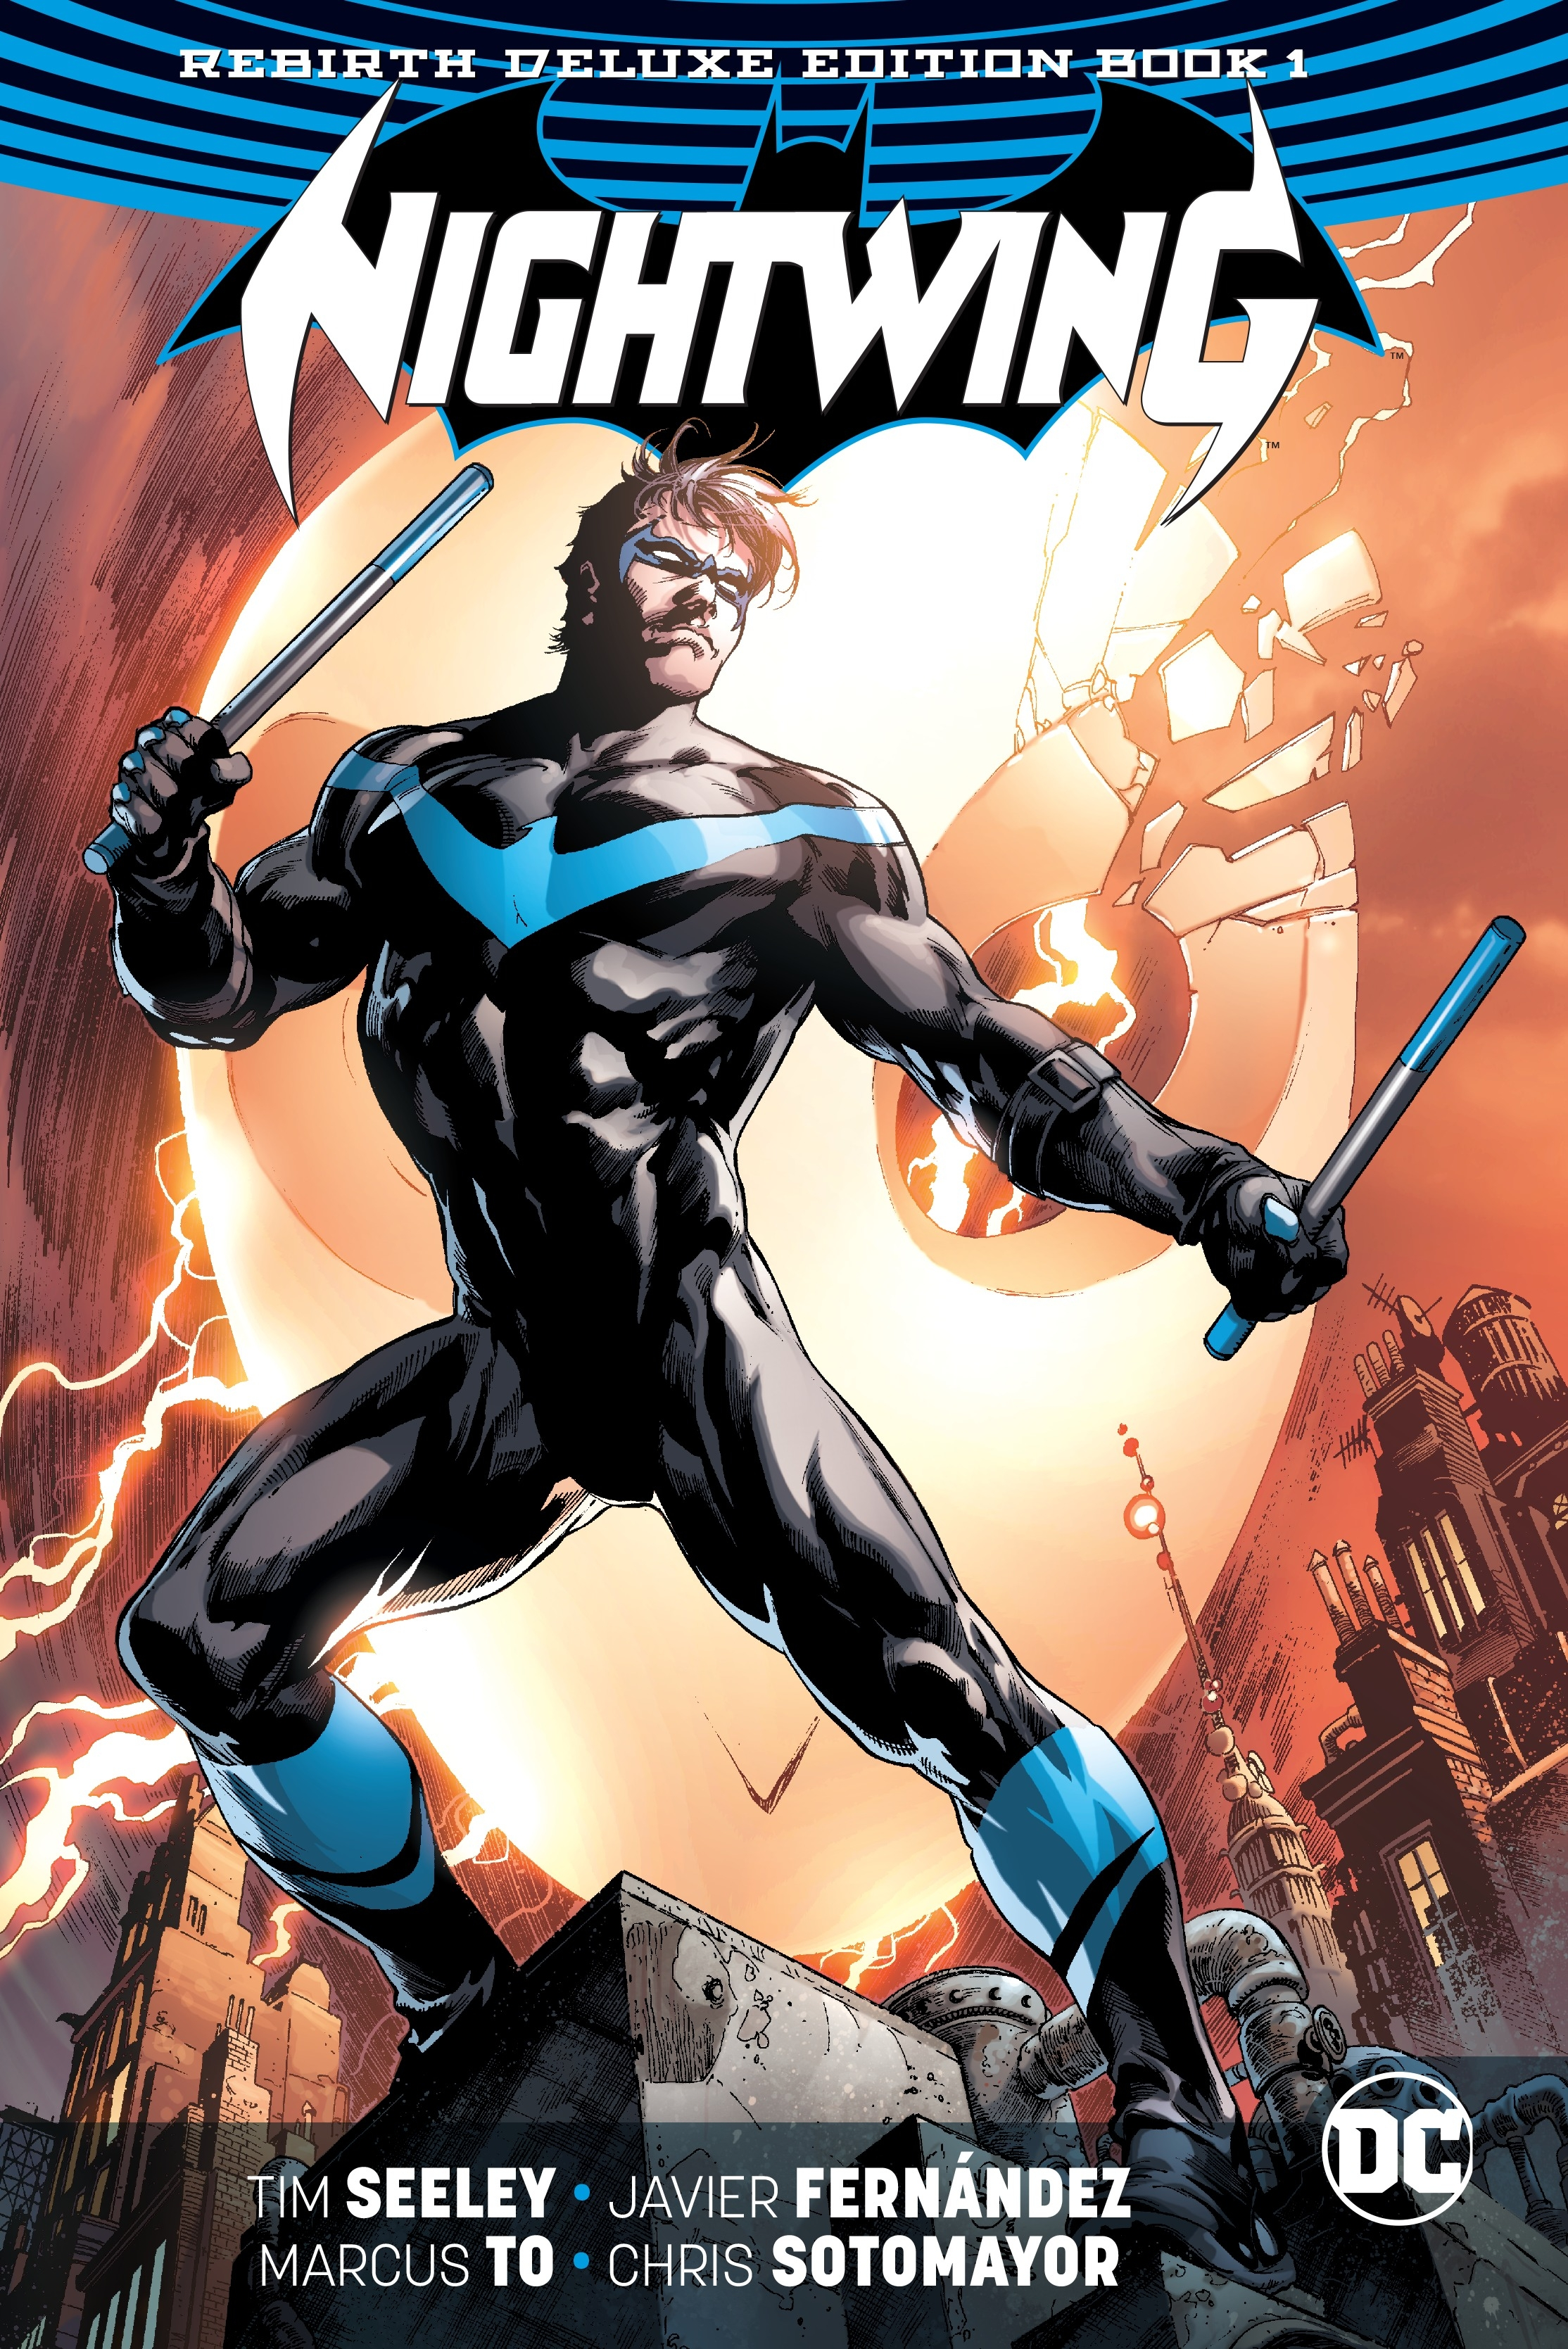 Nightwing: The Rebirth Deluxe Edition Book 1 by Tim Seeley, ISBN: 9781401273750